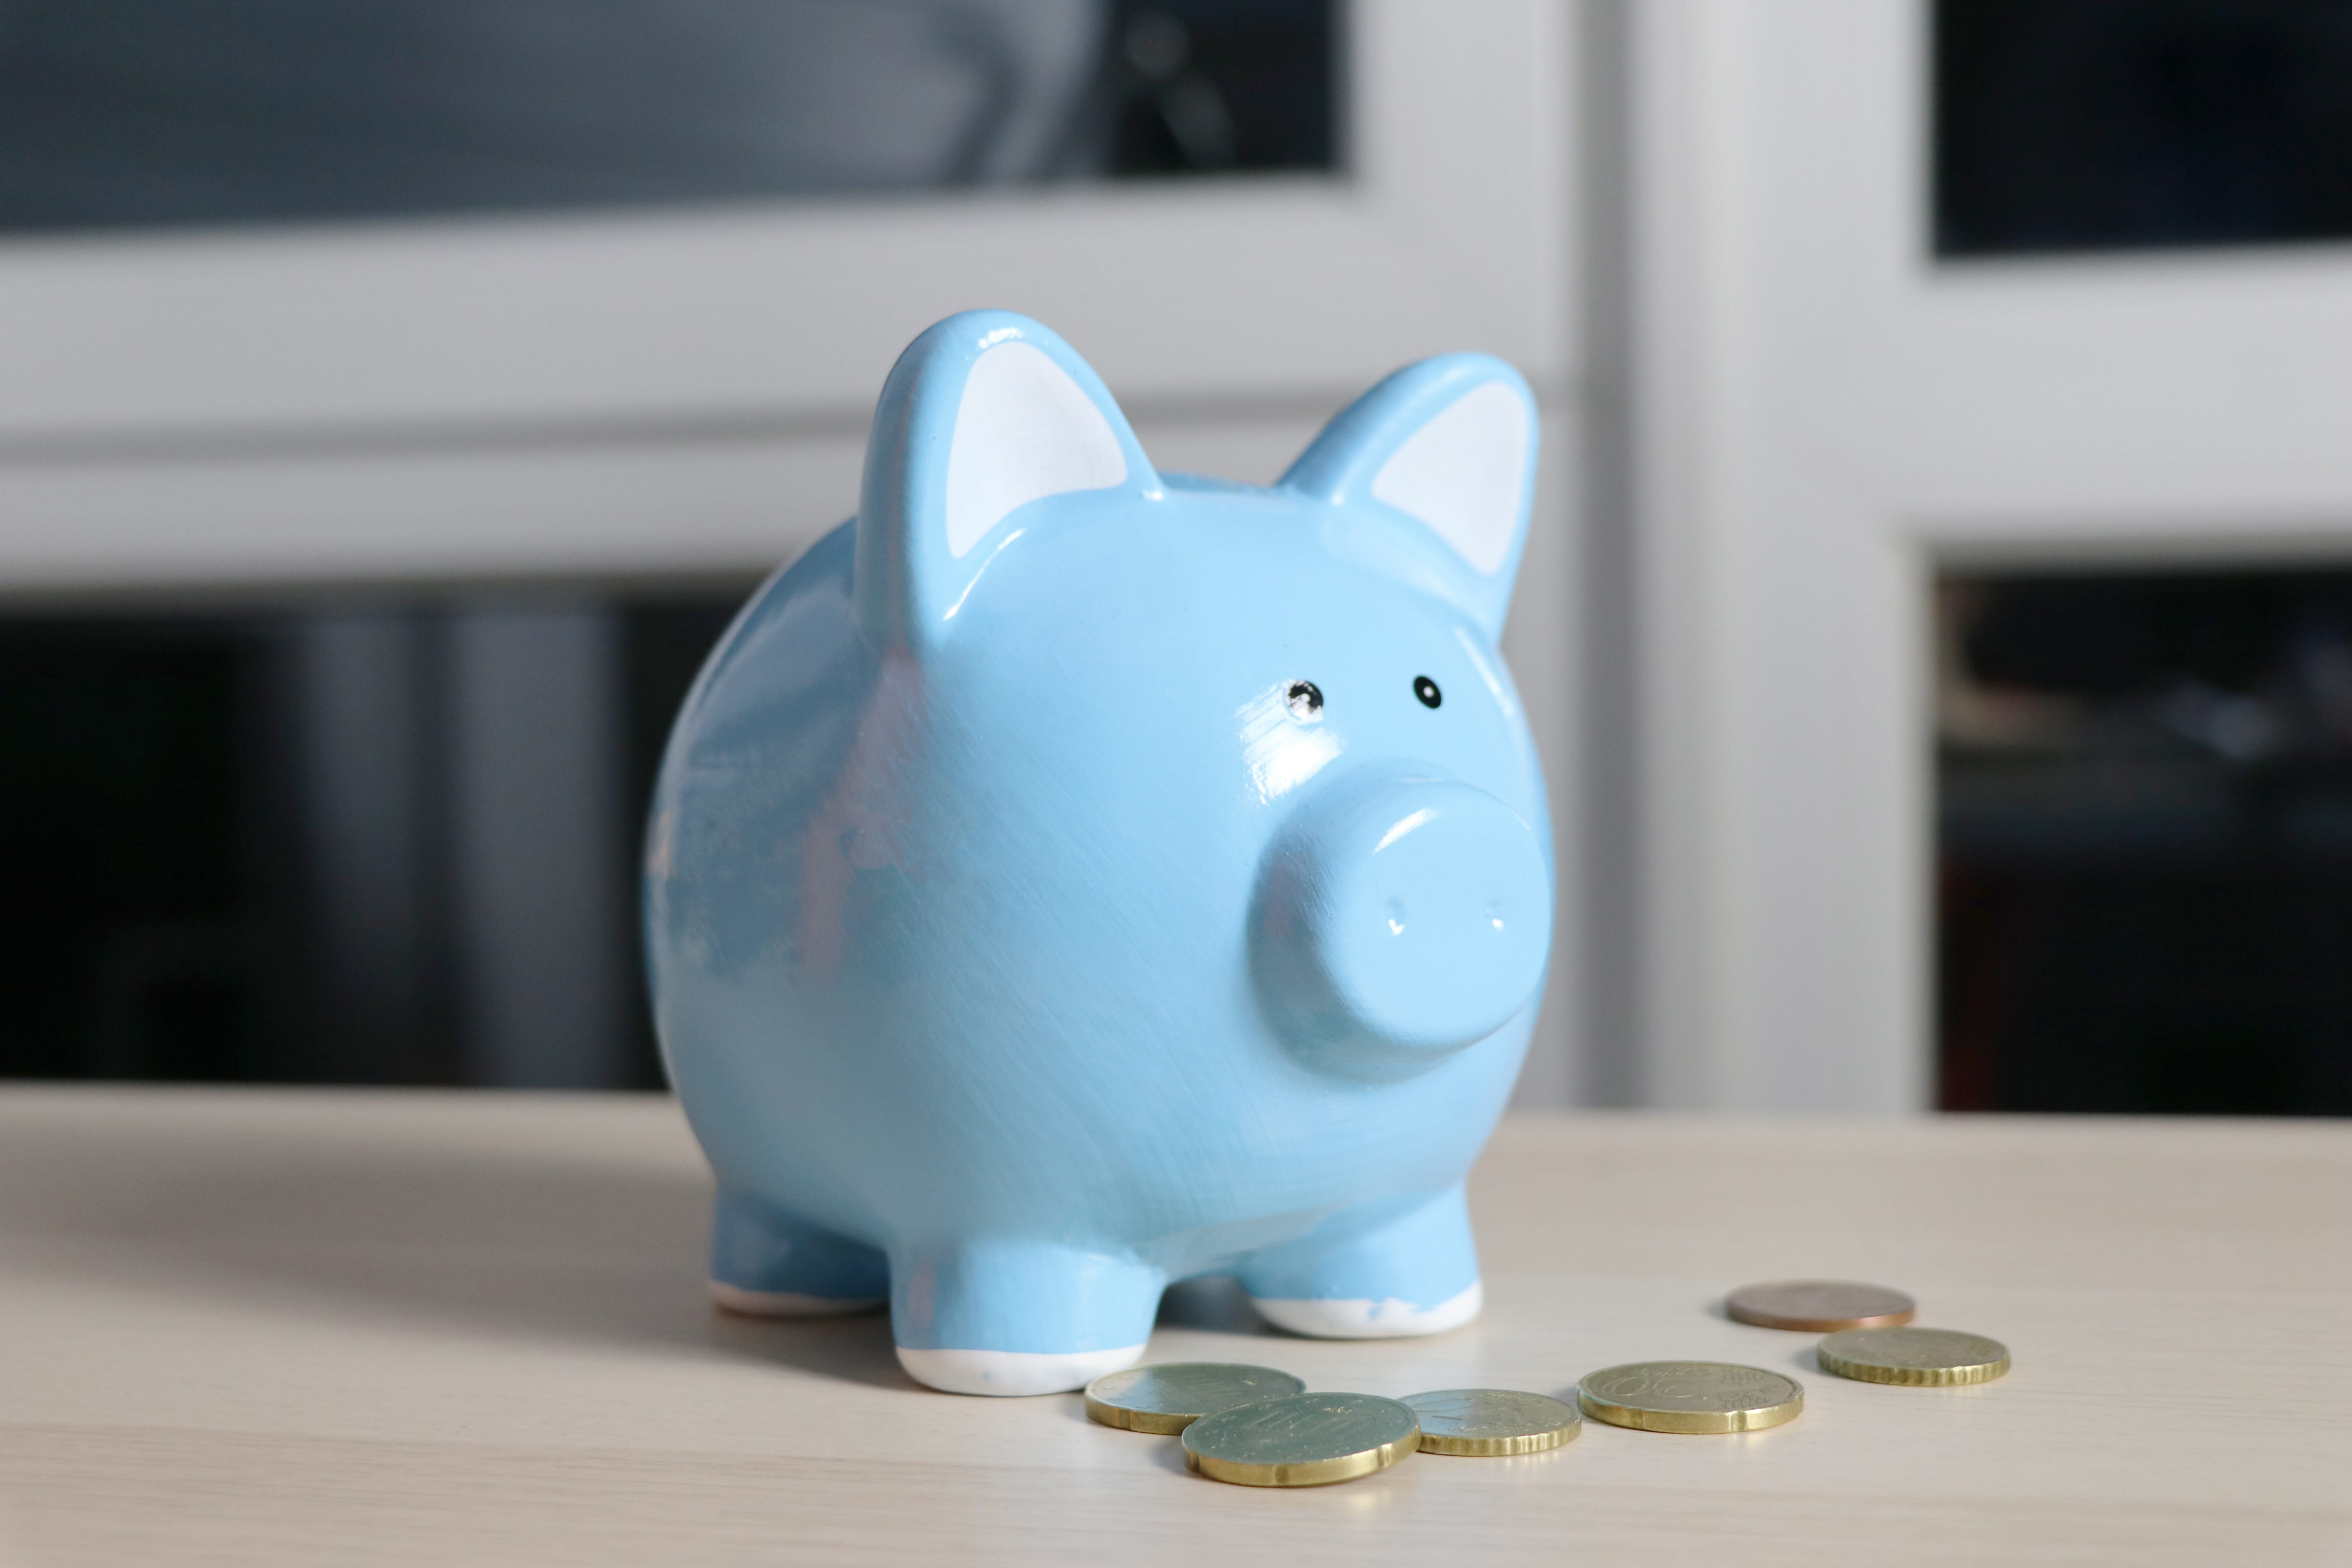 Savings: The Importance of Starting Early